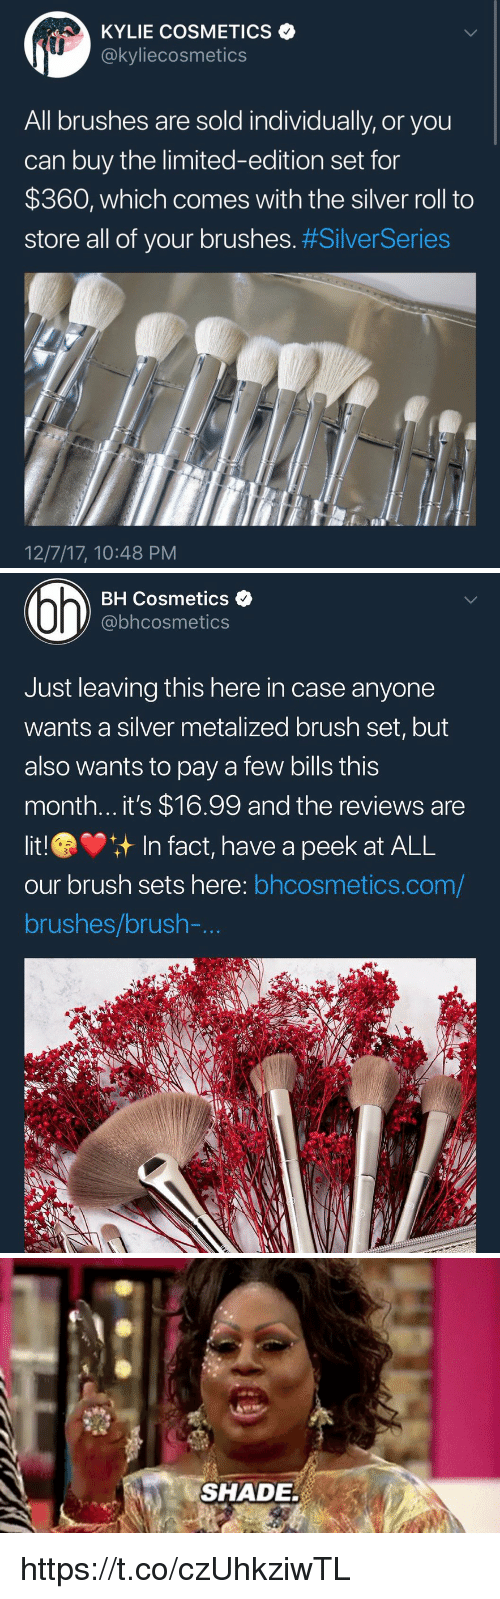 Shade, Limited, and Silver: KYLIE COSMETICS  @kyliecosmetics  All brushes are sold individually, or you  can buy the limited-edition set for  $360, which comes with the silver roll to  store all of your brushes. #SilverSeries  fin  12/7/17, 10:48 PM   BH Cosmetics <  @bhcosmetics  Just leaving this here in case anyone  wants a silver metalized brush set, but  also wants to pay a few bills this  month... it's $16.99 and the reviews are  litIn fact, have a peek at ALL  our brush sets here: bhcosmetics.com/  brushes/brush-   SHADE https://t.co/czUhkziwTL